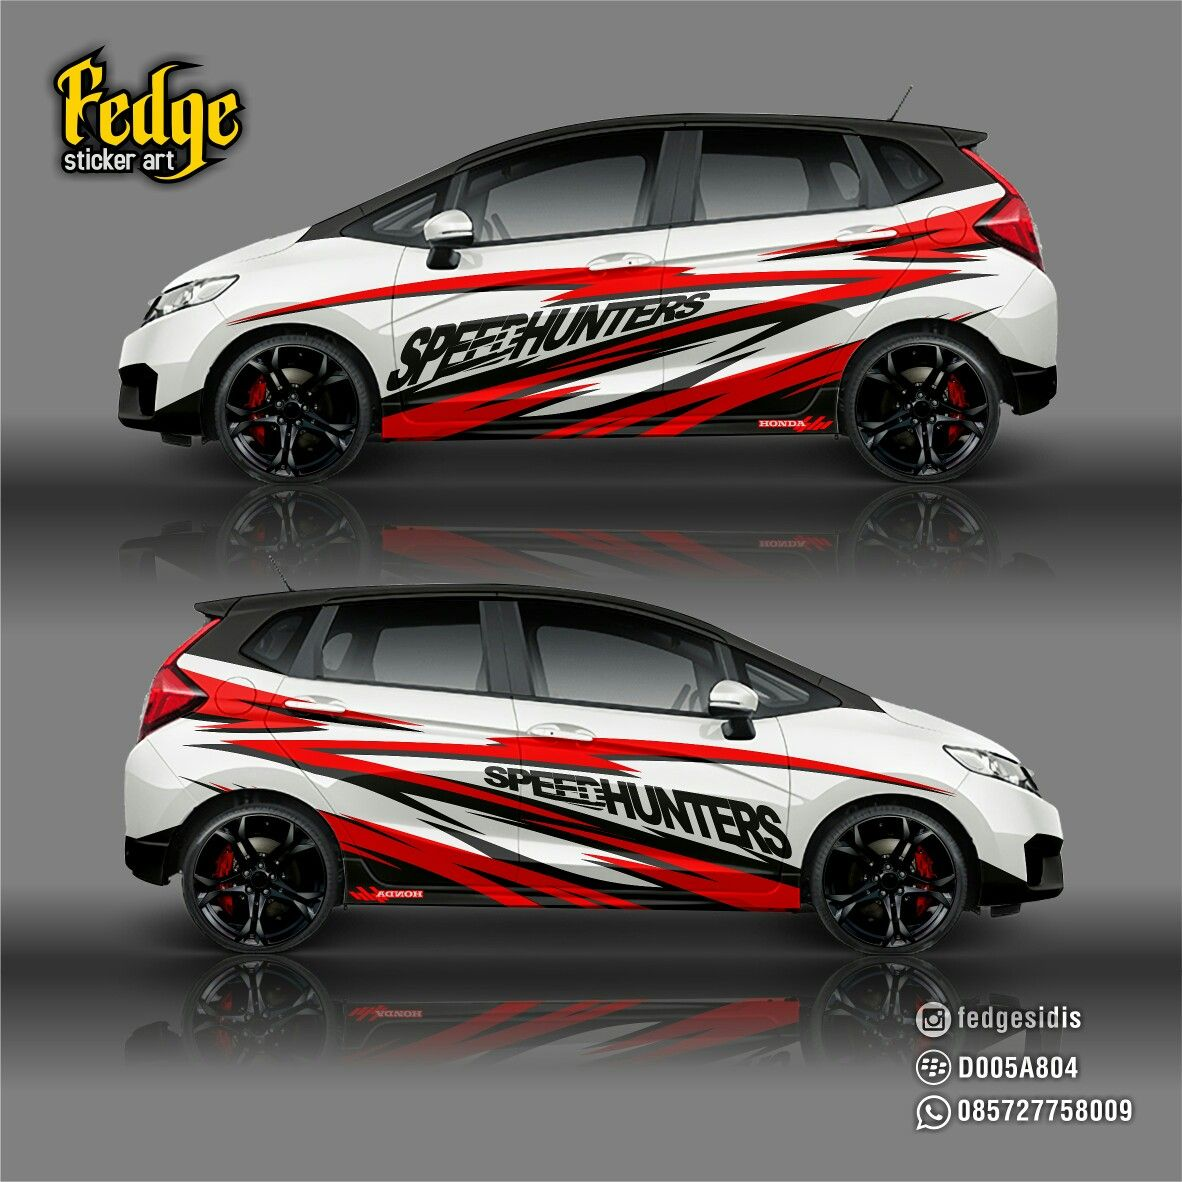 Wrap design for honda jazz 2016 original design by alip yuli fedge